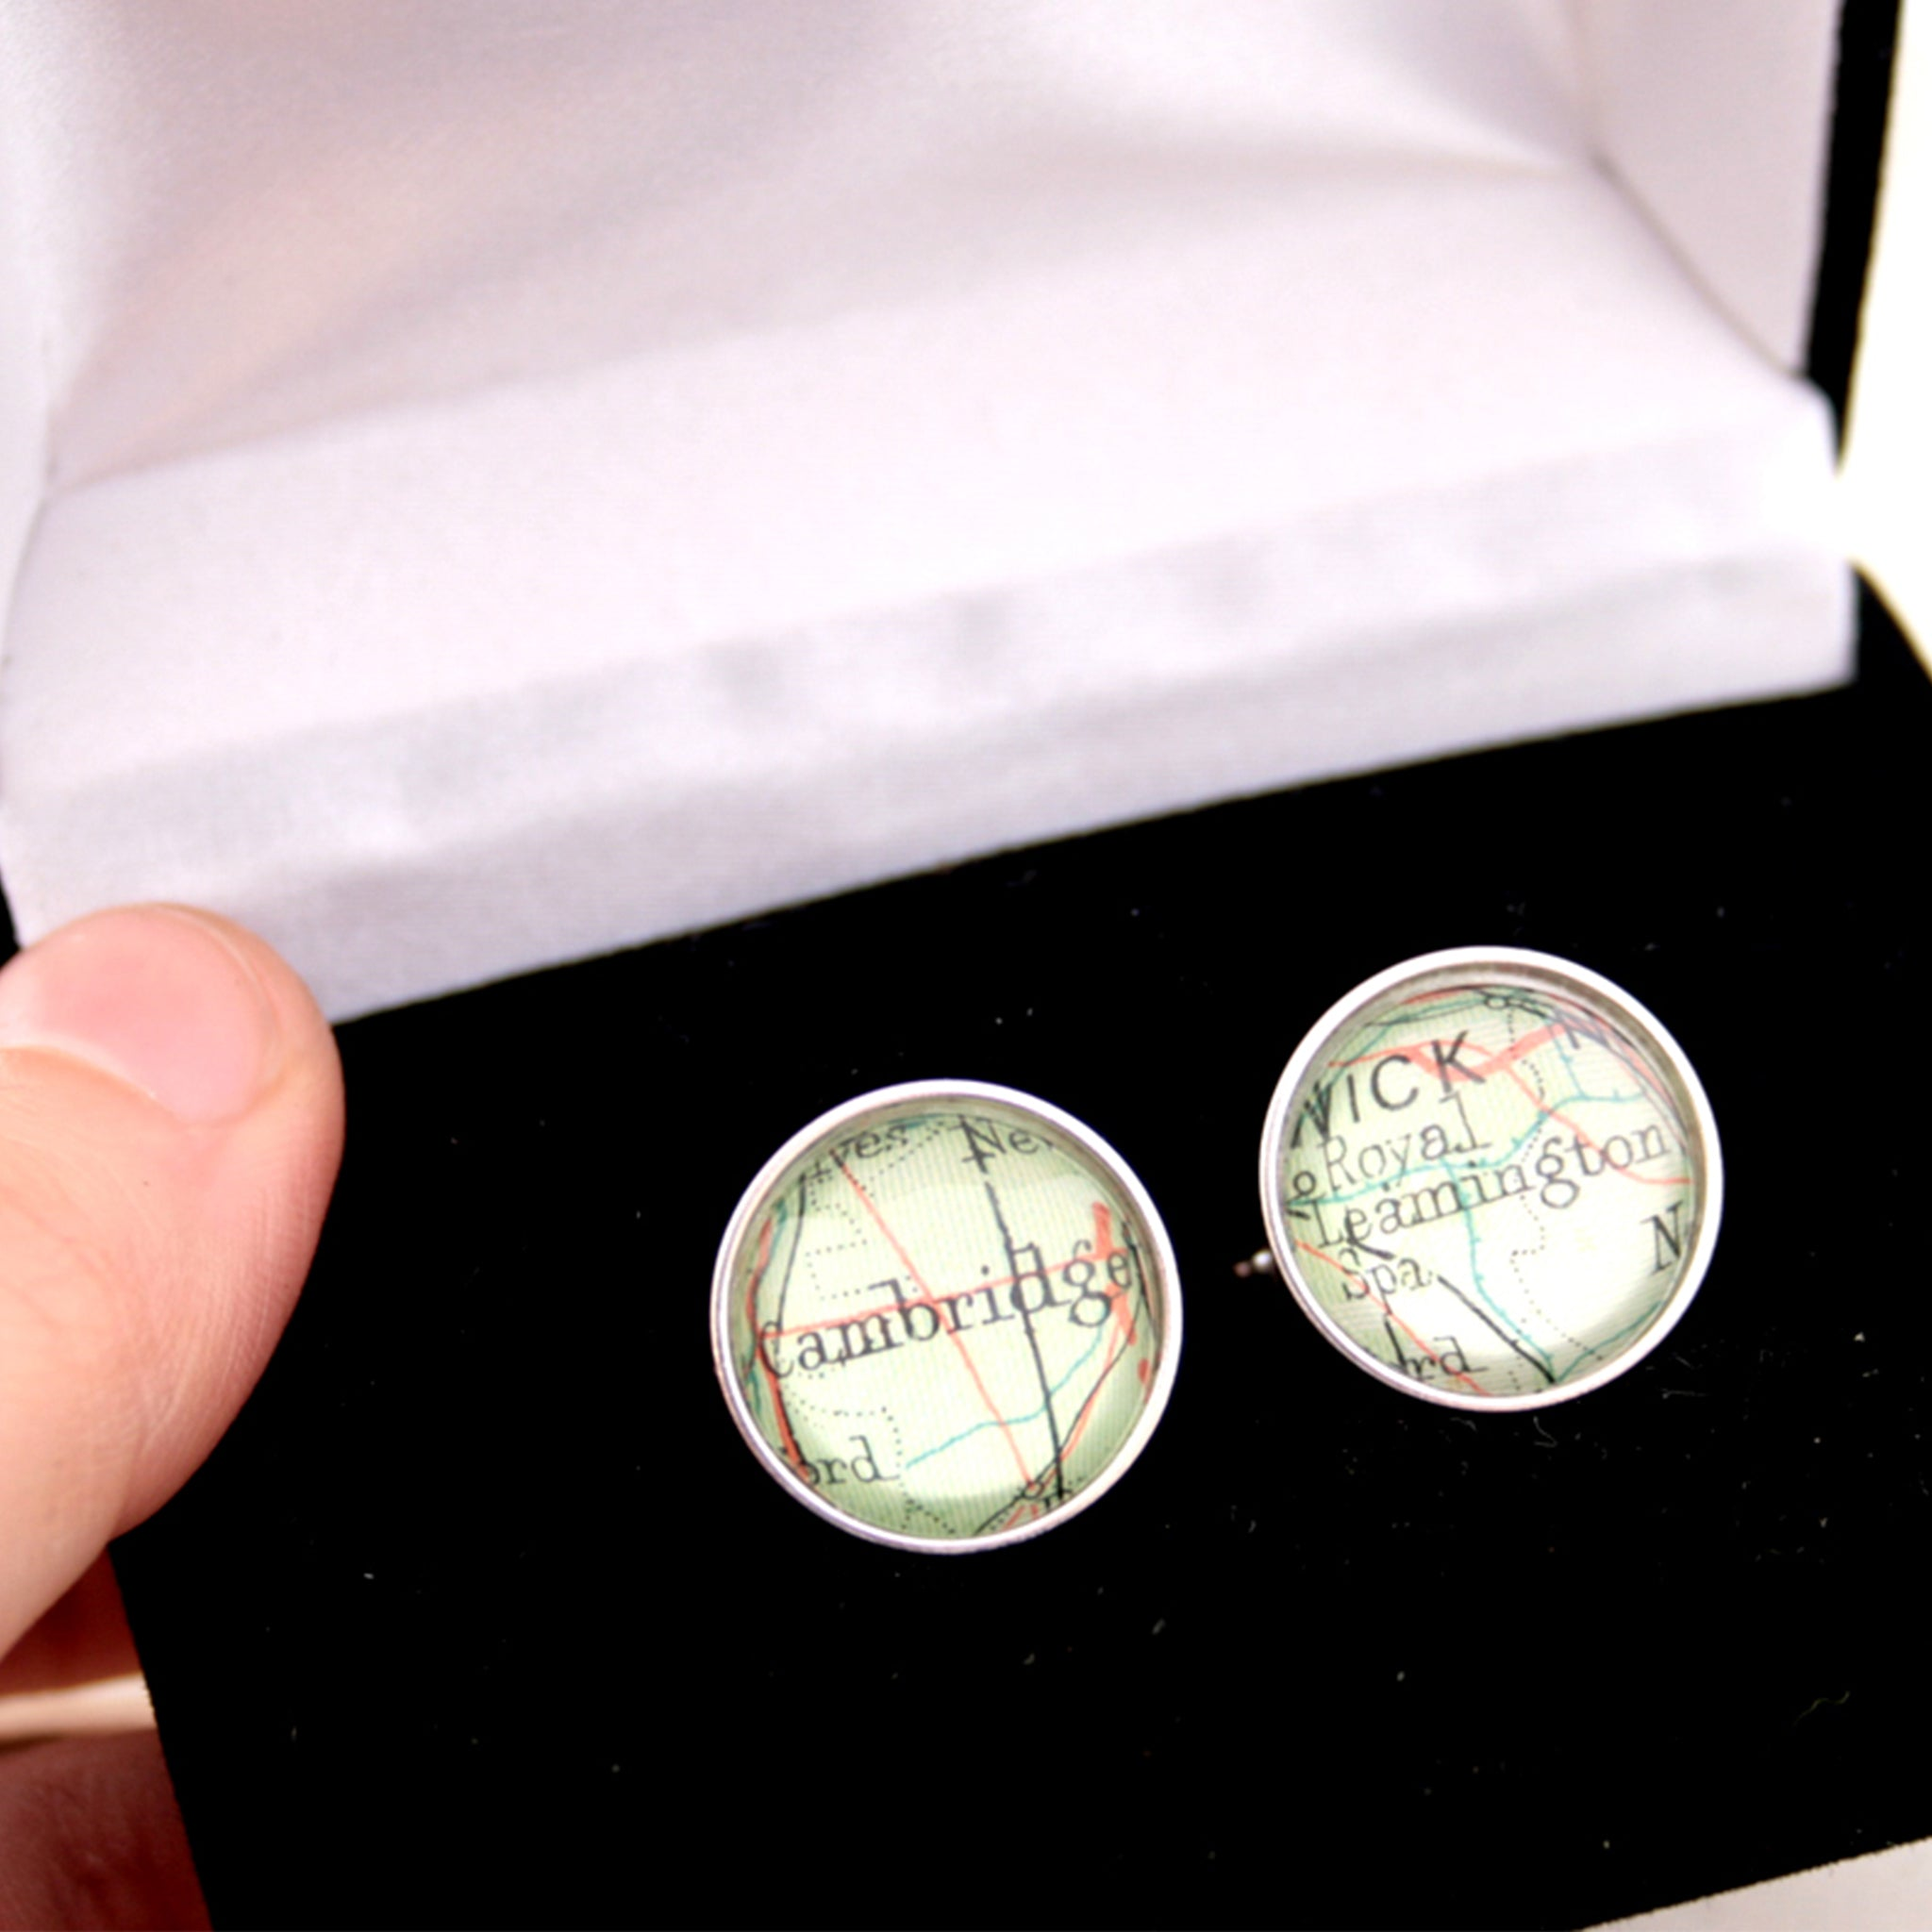 Sterling silver Personalised map cufflinks featuring maps of Cambridge and Leamington Spa in a box